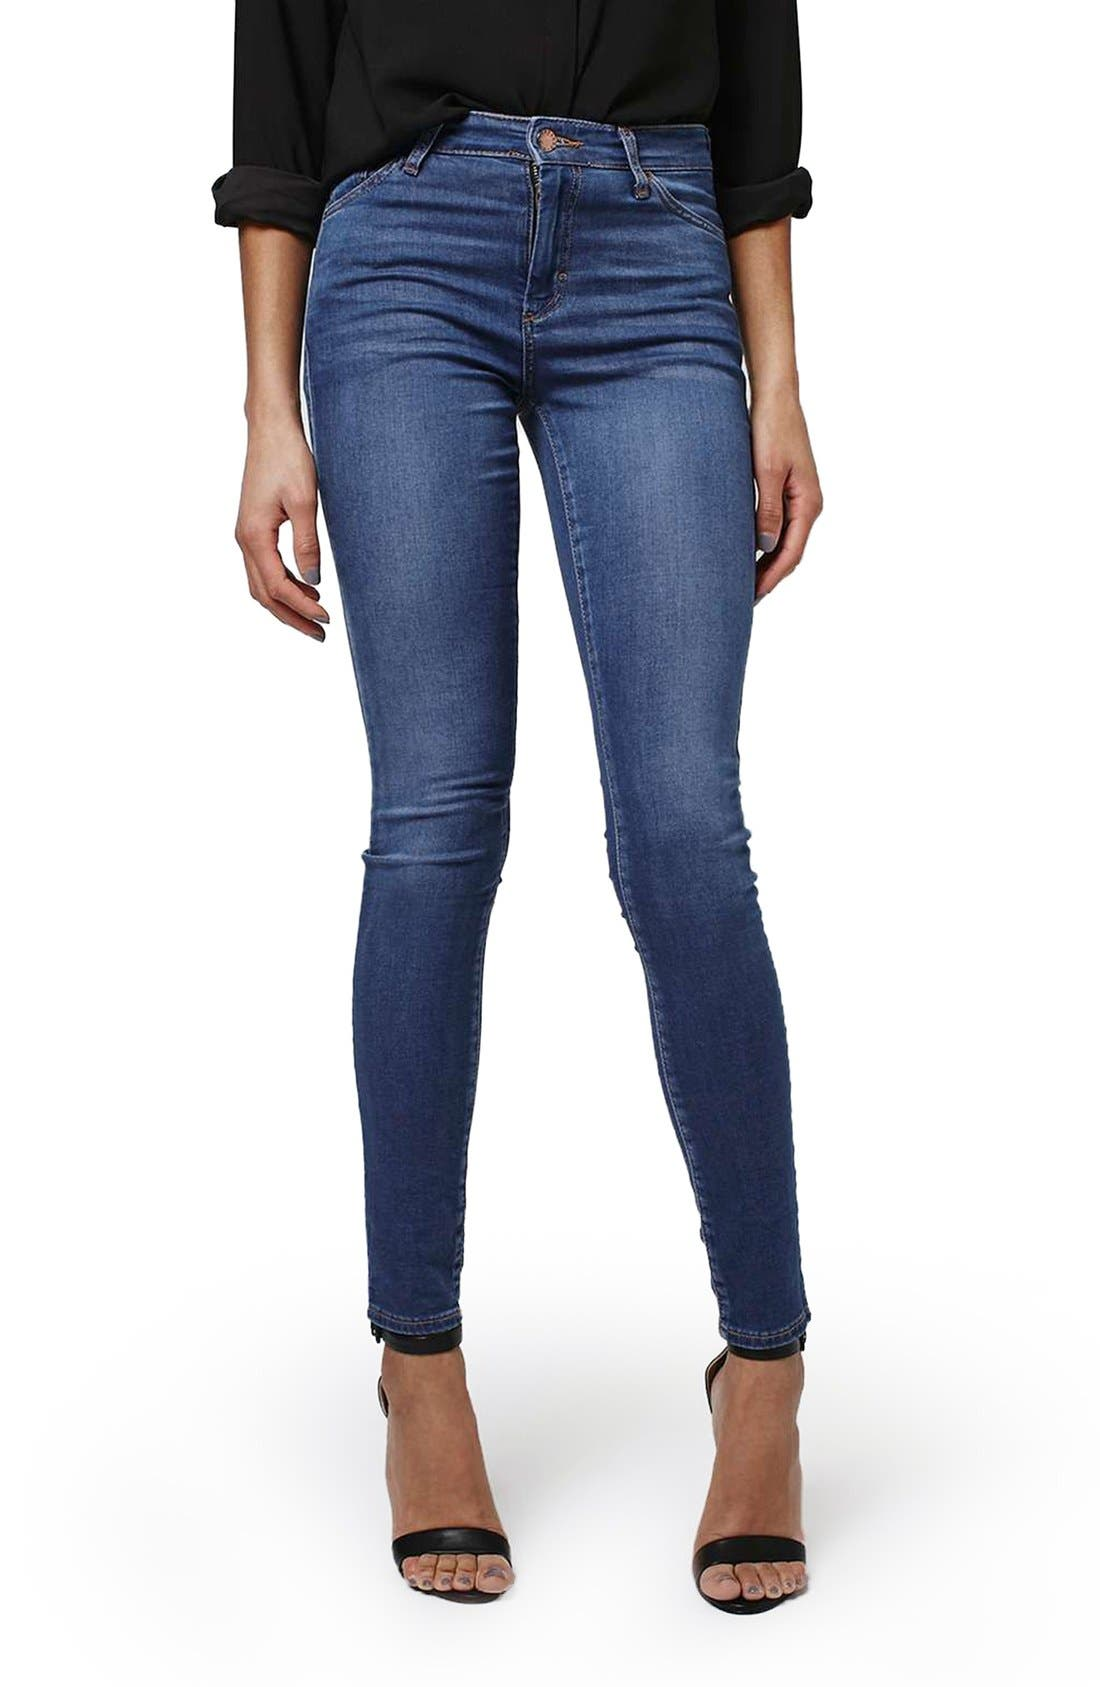 Topshop 'Leigh' Ankle Skinny Jeans